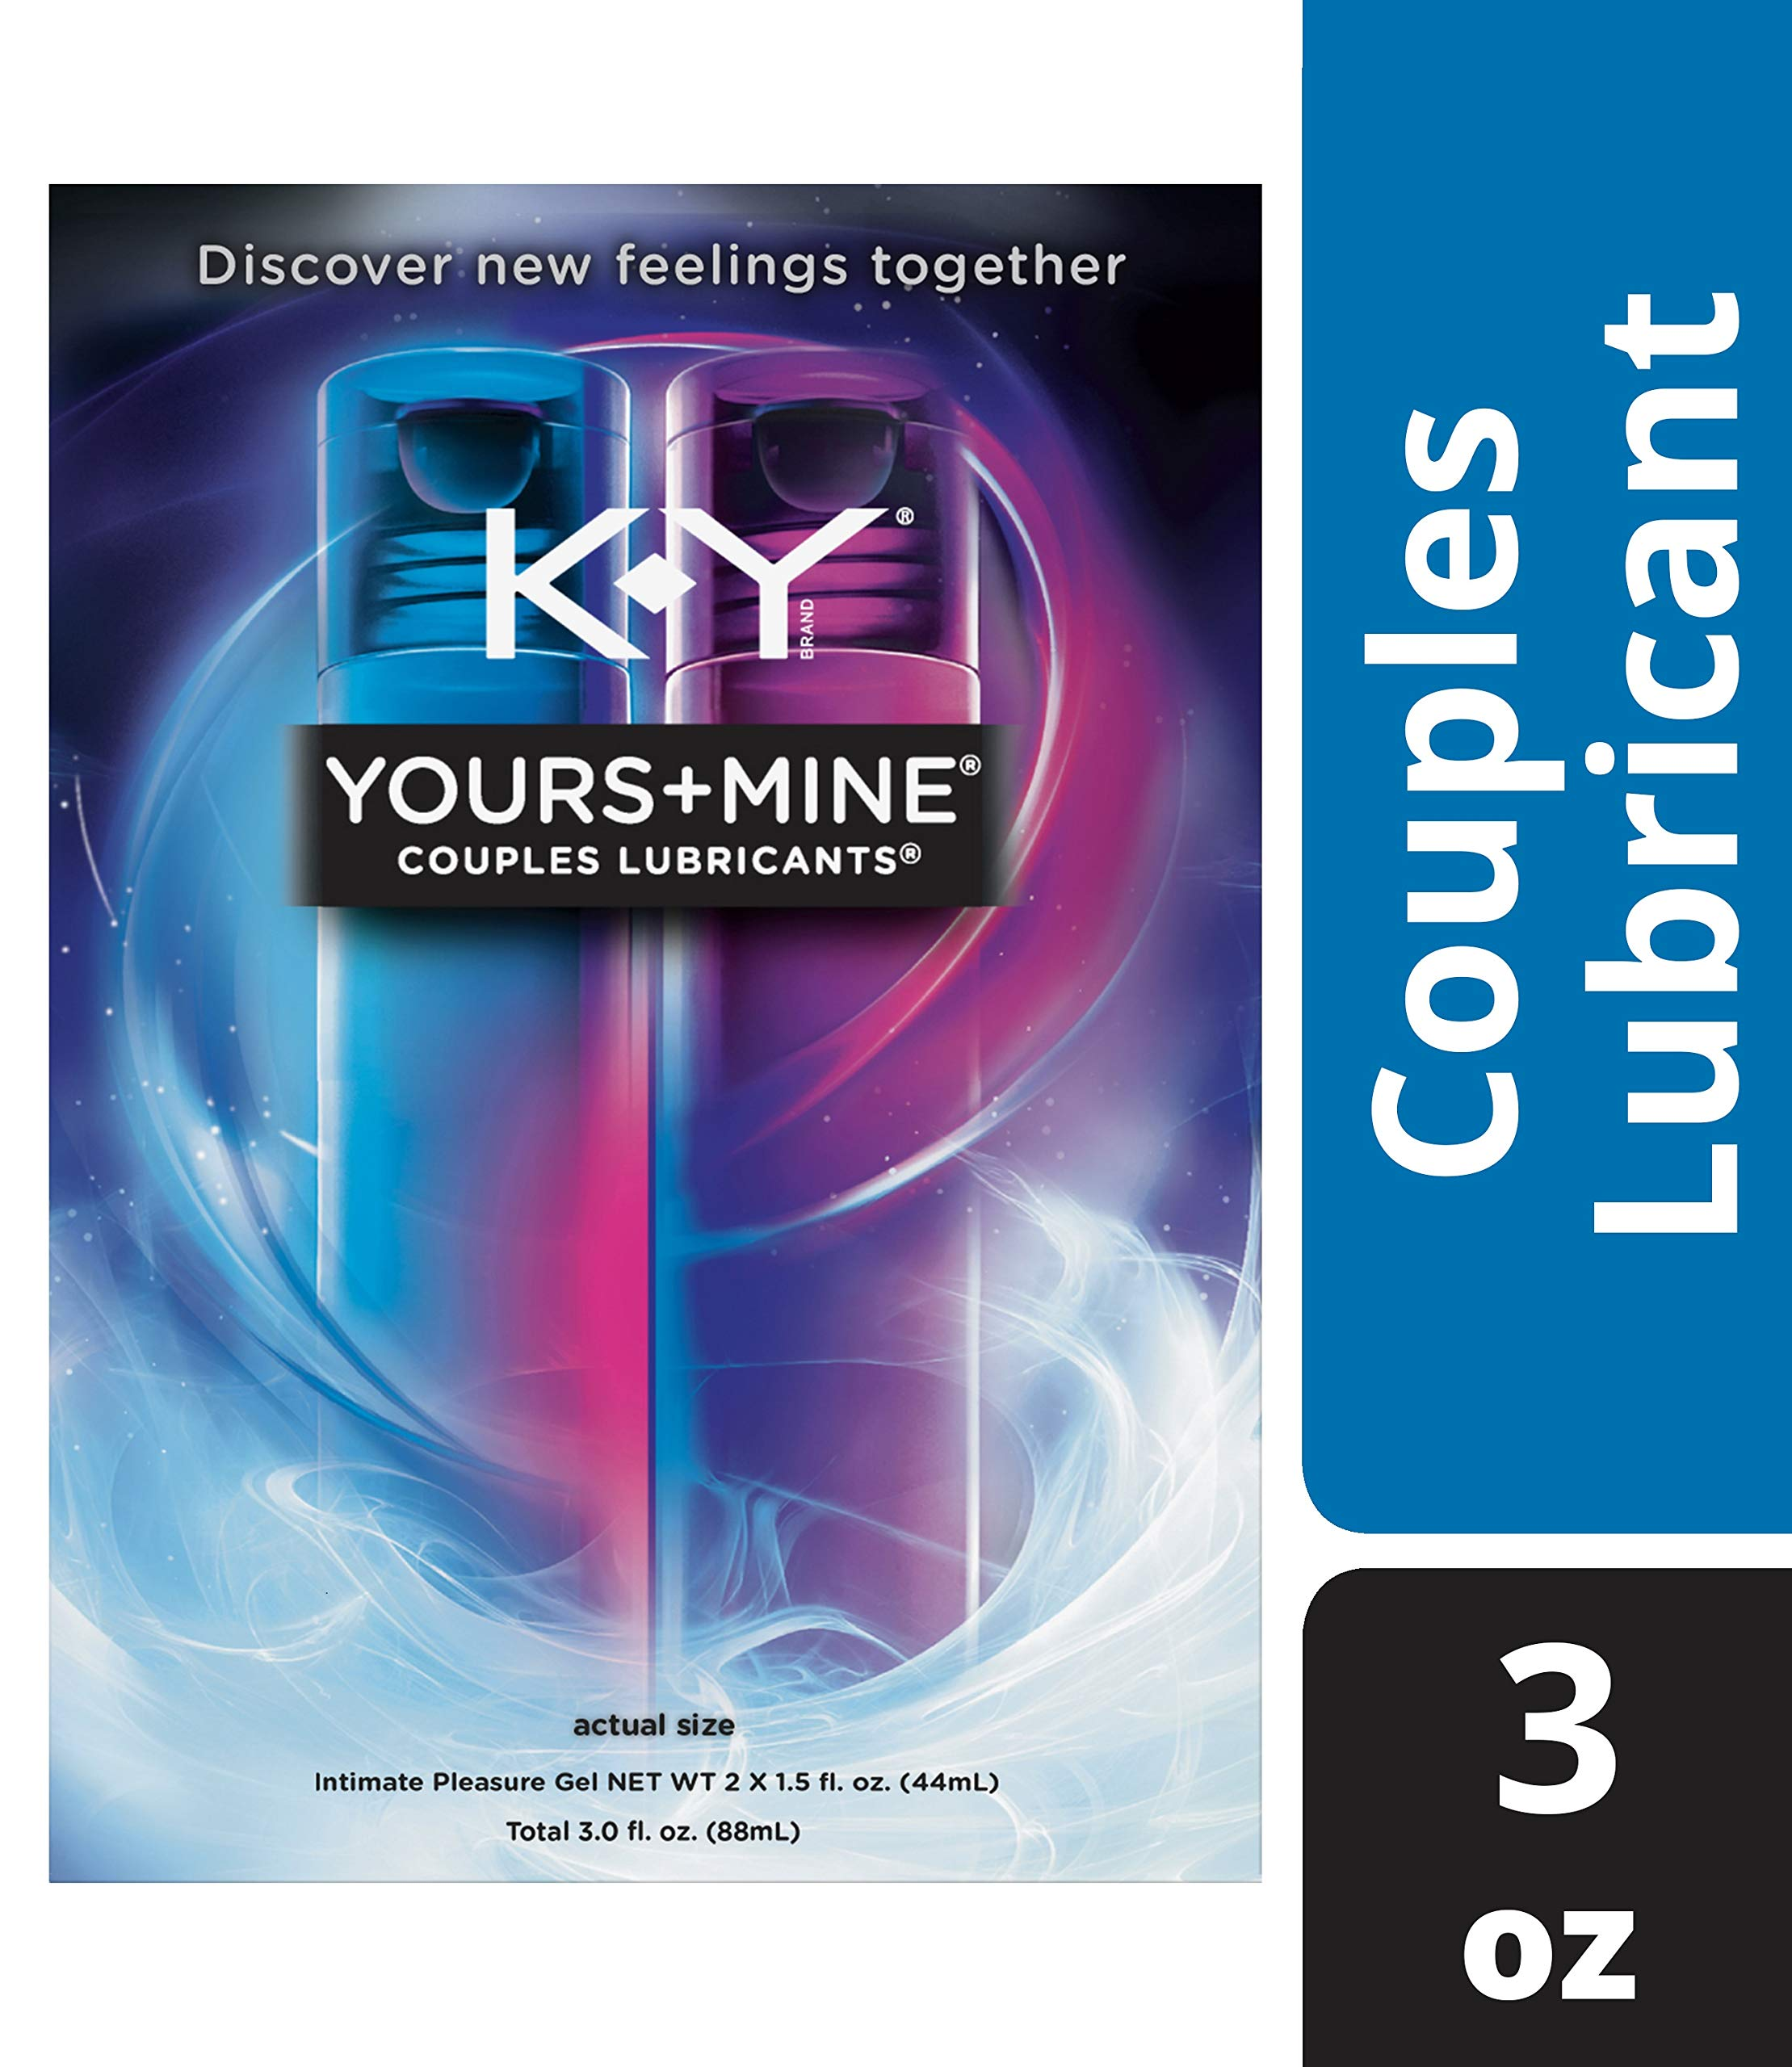 Lubricant for Him and Her, K-Y Yours & Mine Couples Lubricant, 3 oz, Couples Personal Lubricant and Intimate Gel. Sex Lube for Women, Men & Couples. by K-Y